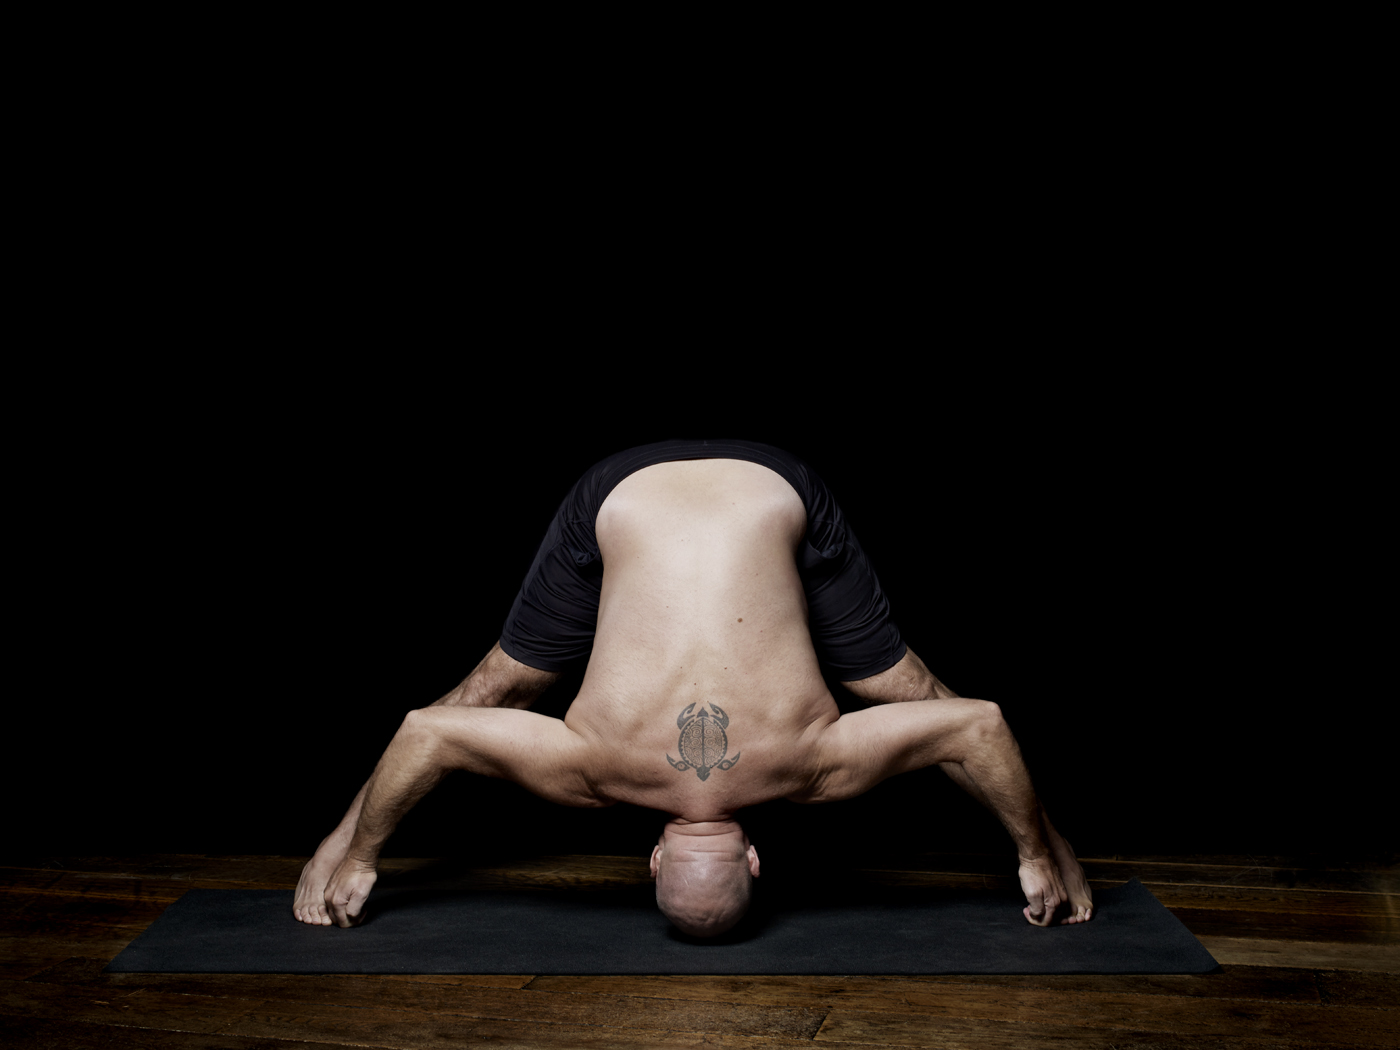 Thibault Stipal - Photographer - Kshanti Yoga Studio - 4